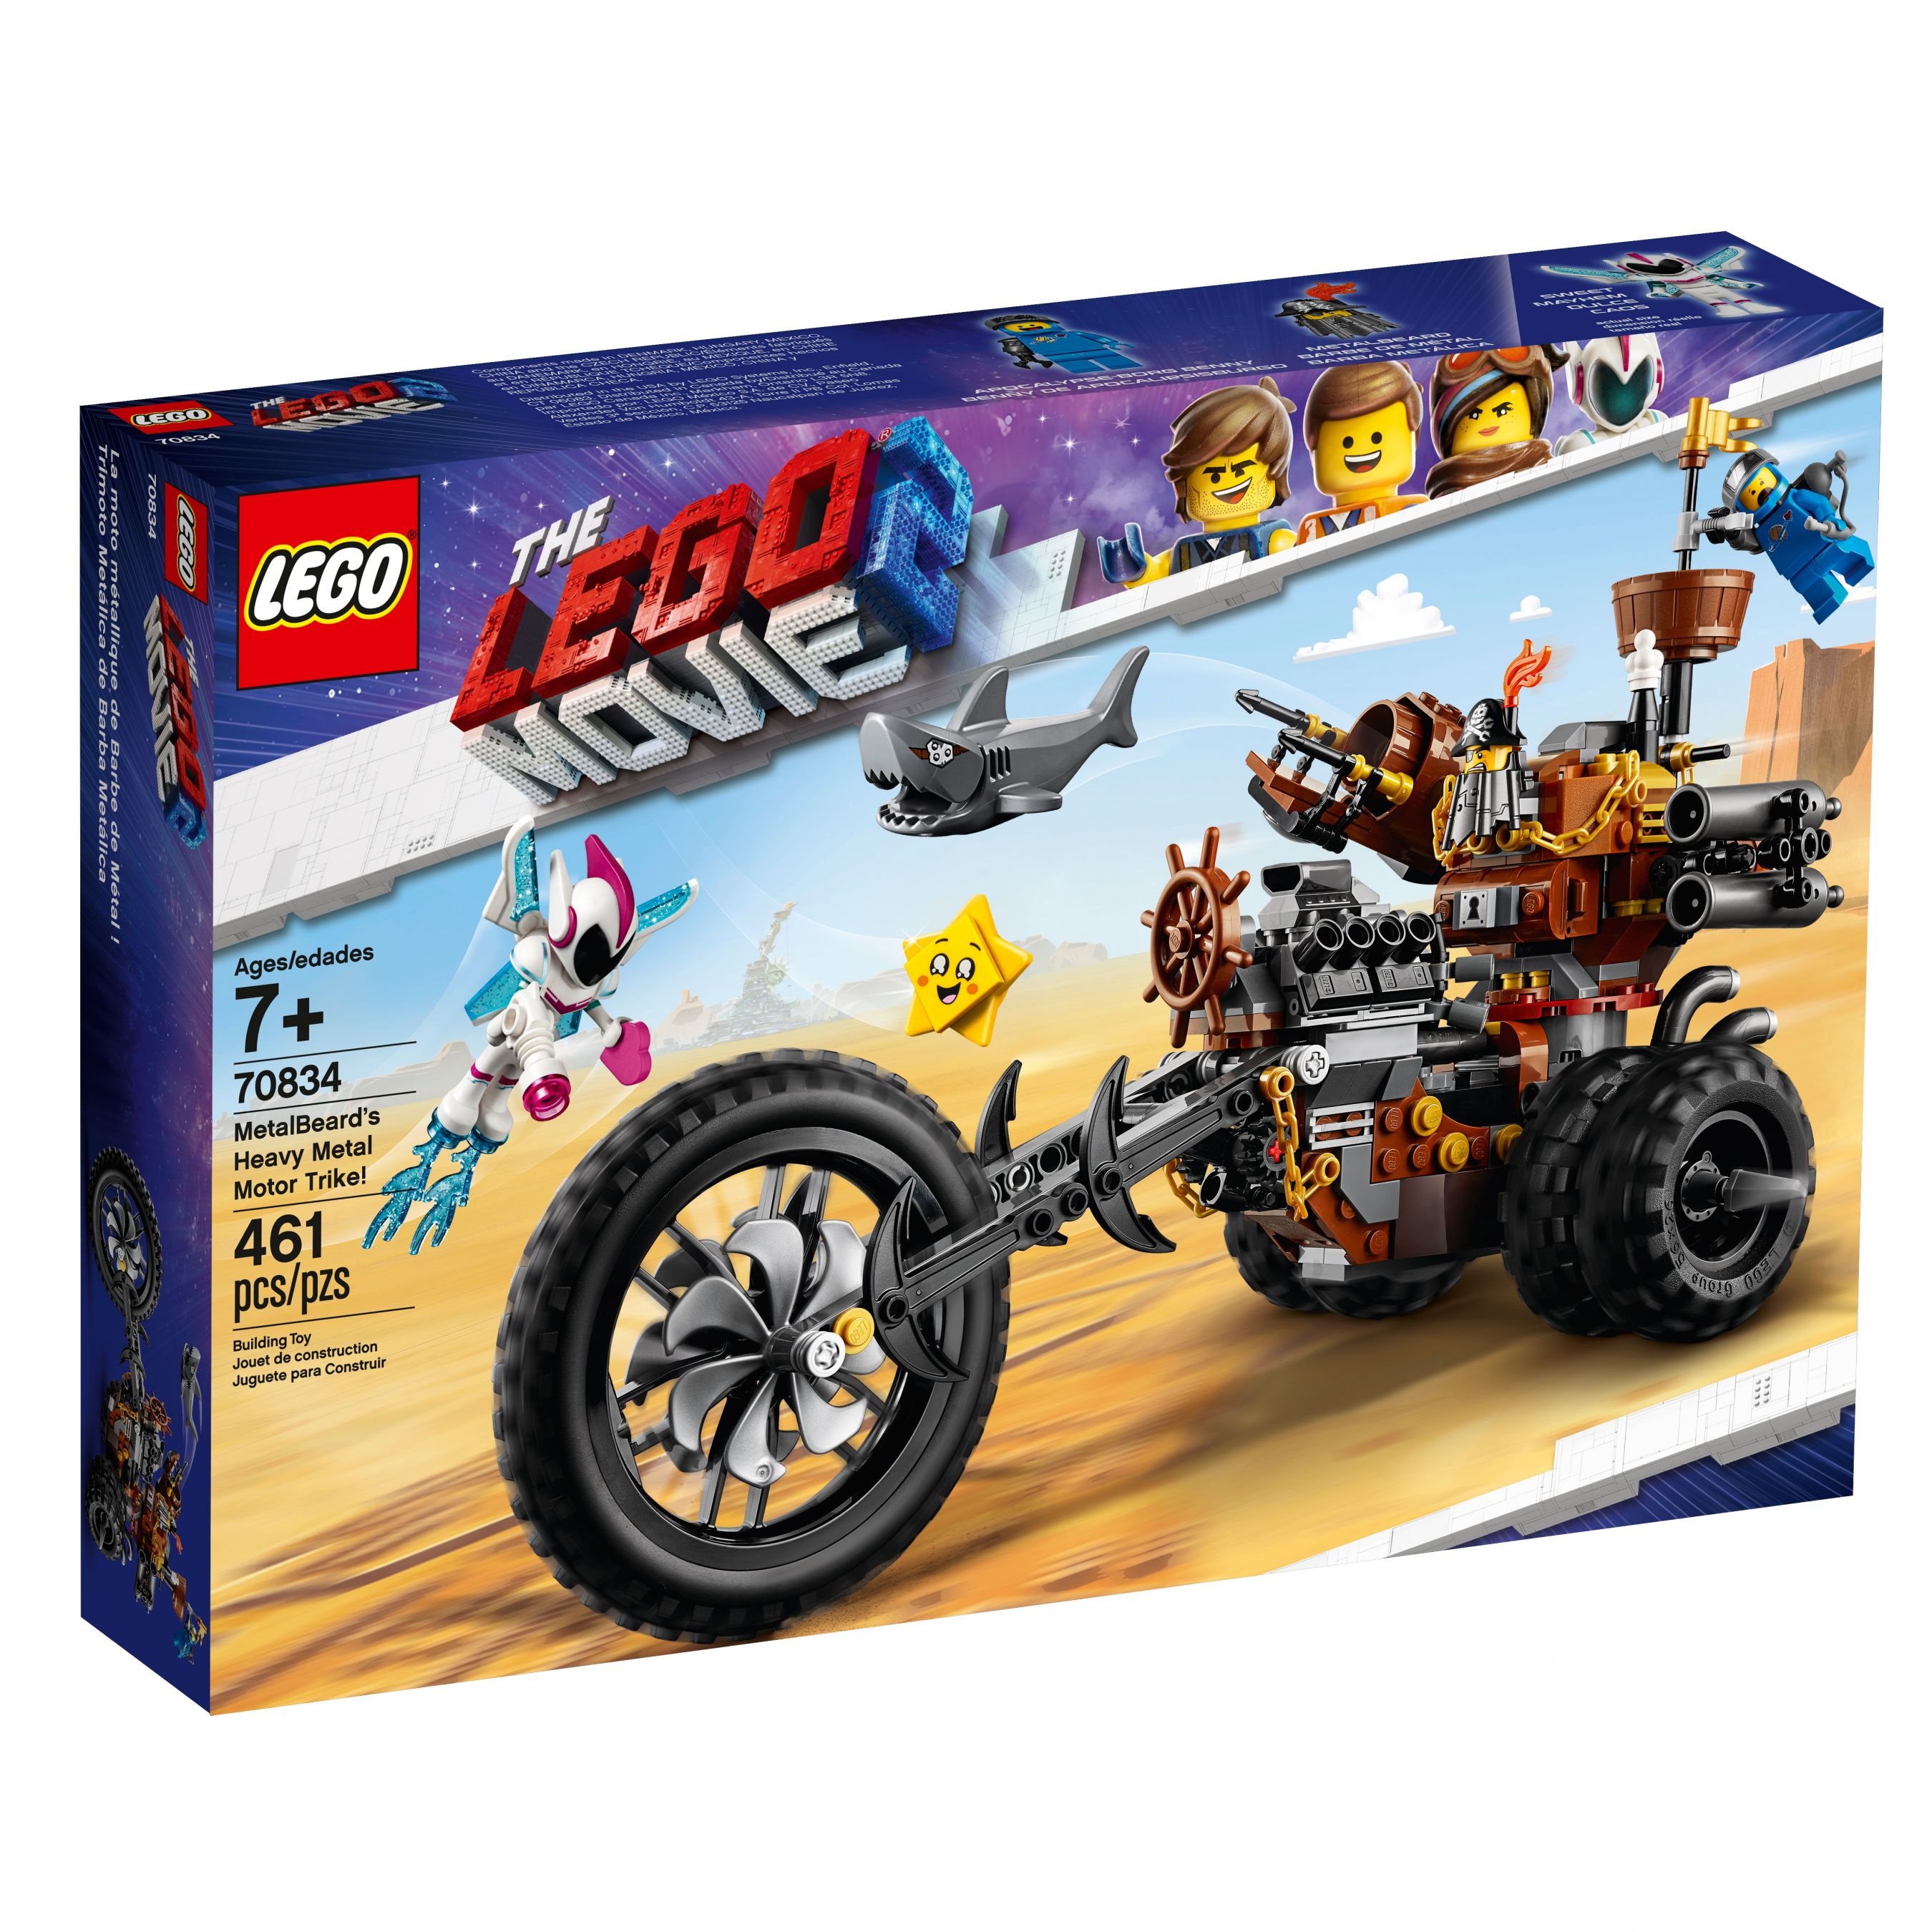 LEGO The LEGO Movie 2 70834 Eisenbarts Heavy-Metal-Trike! LEGO_70834_alt1.jpg